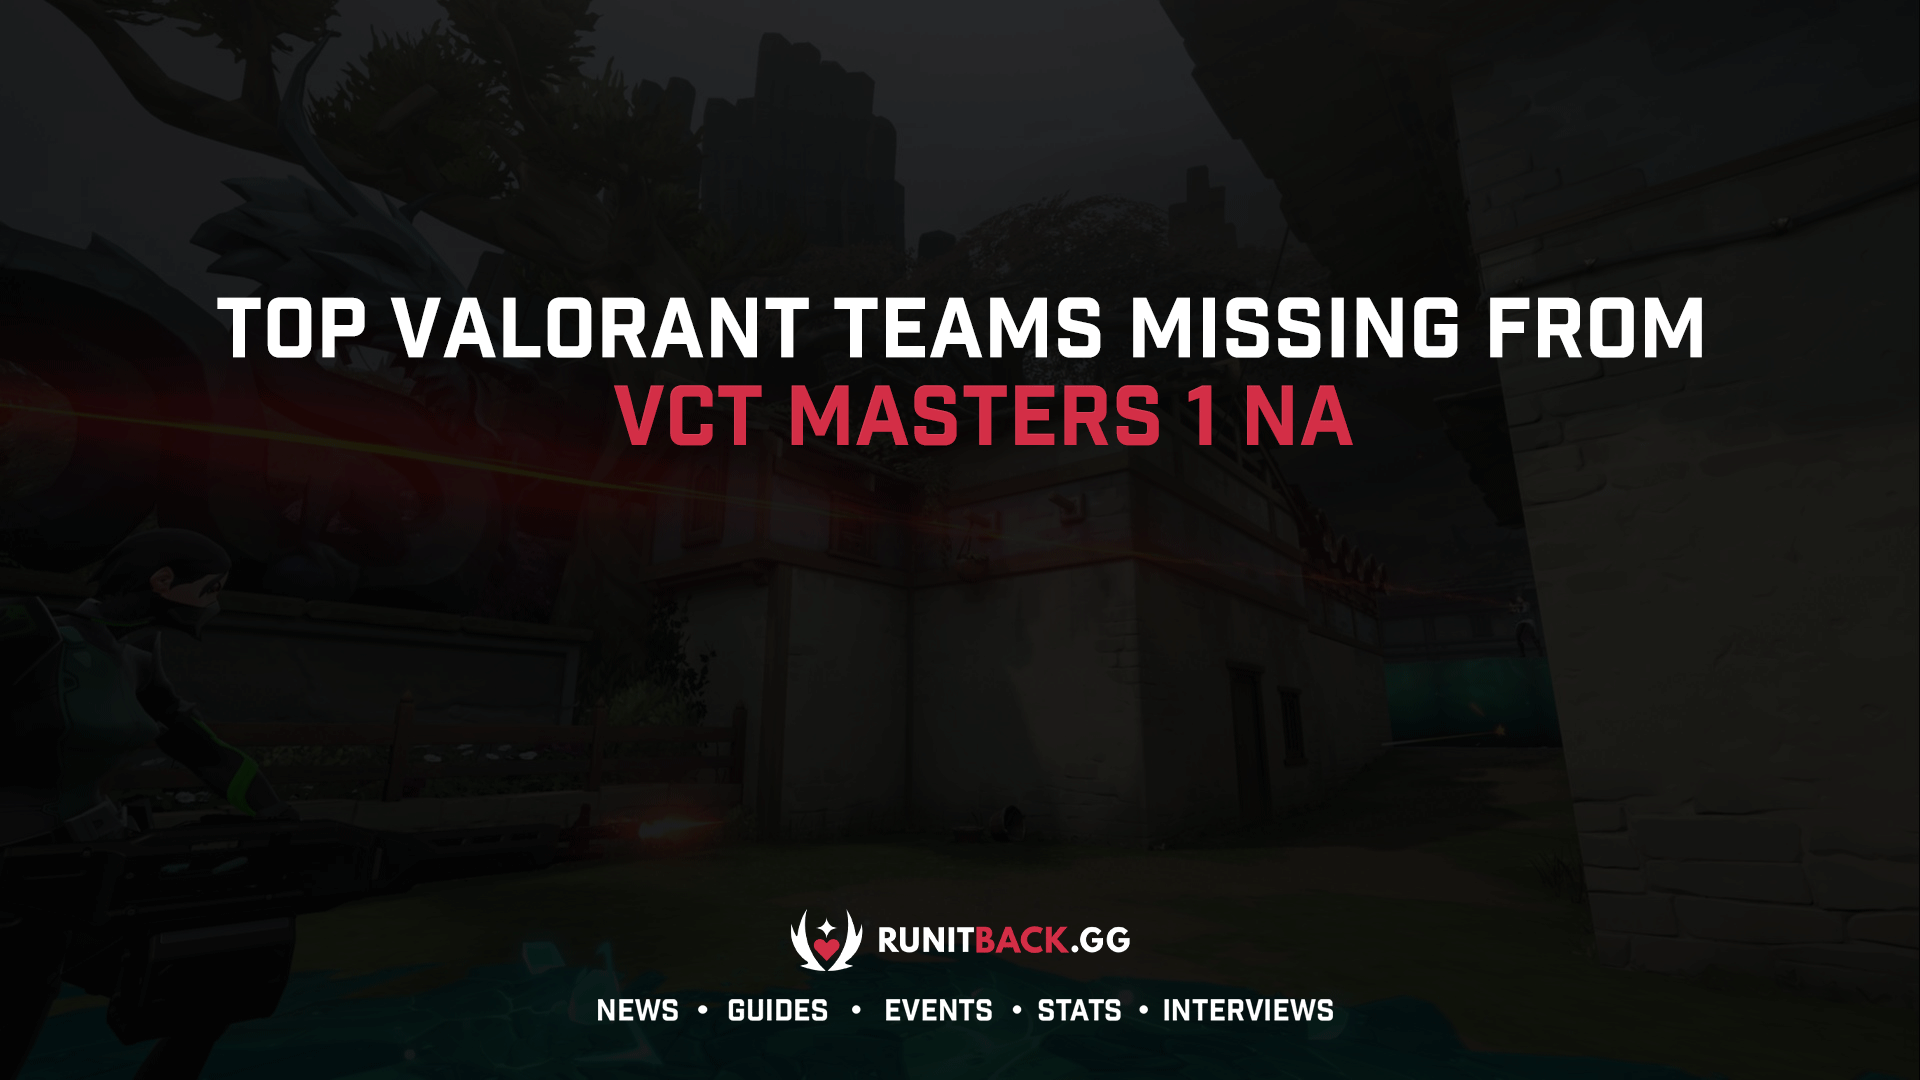 Top Valorant teams missing from VCT Masters 1 North America